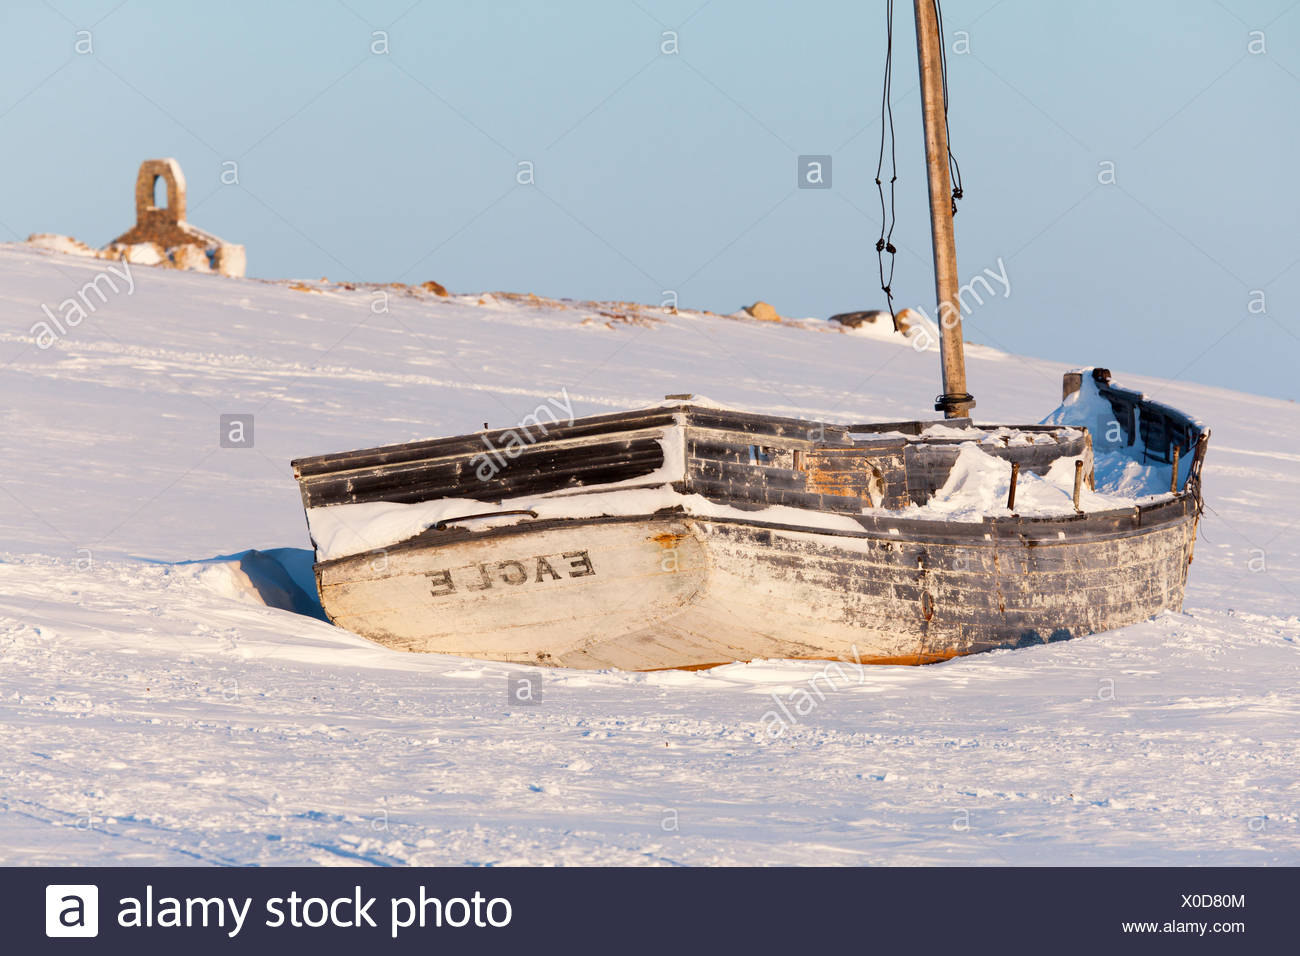 A boat sits on the shores of Cambridge Bay, Nunavut, Canada - Stock Image